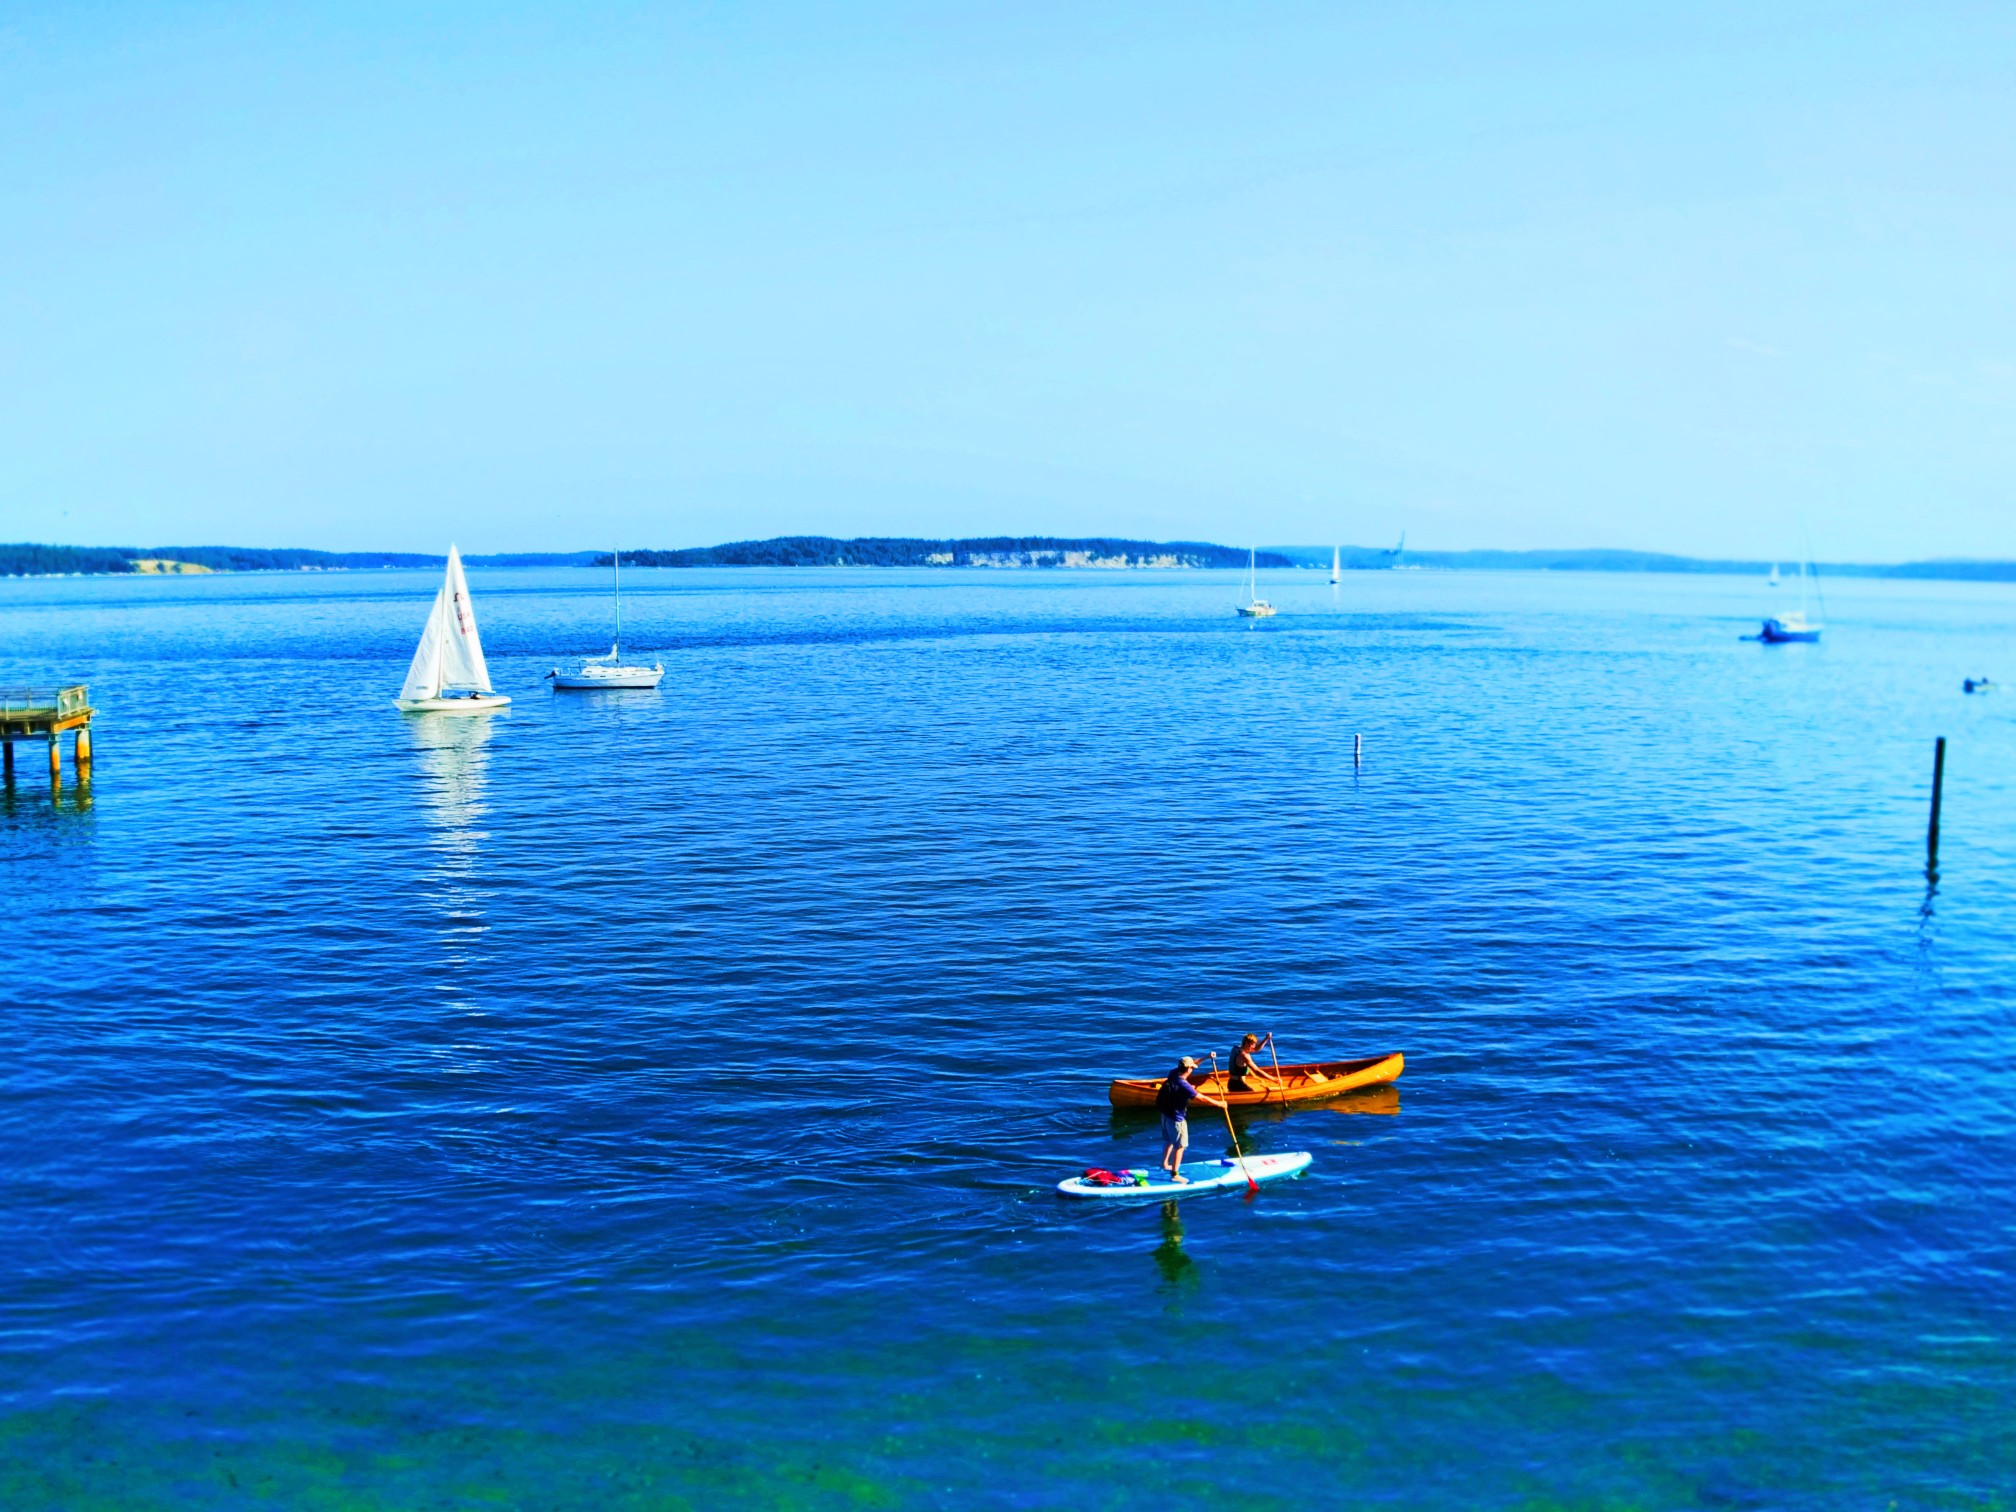 Summertime Water sports in Port Townsend Olympic Peninsula 1